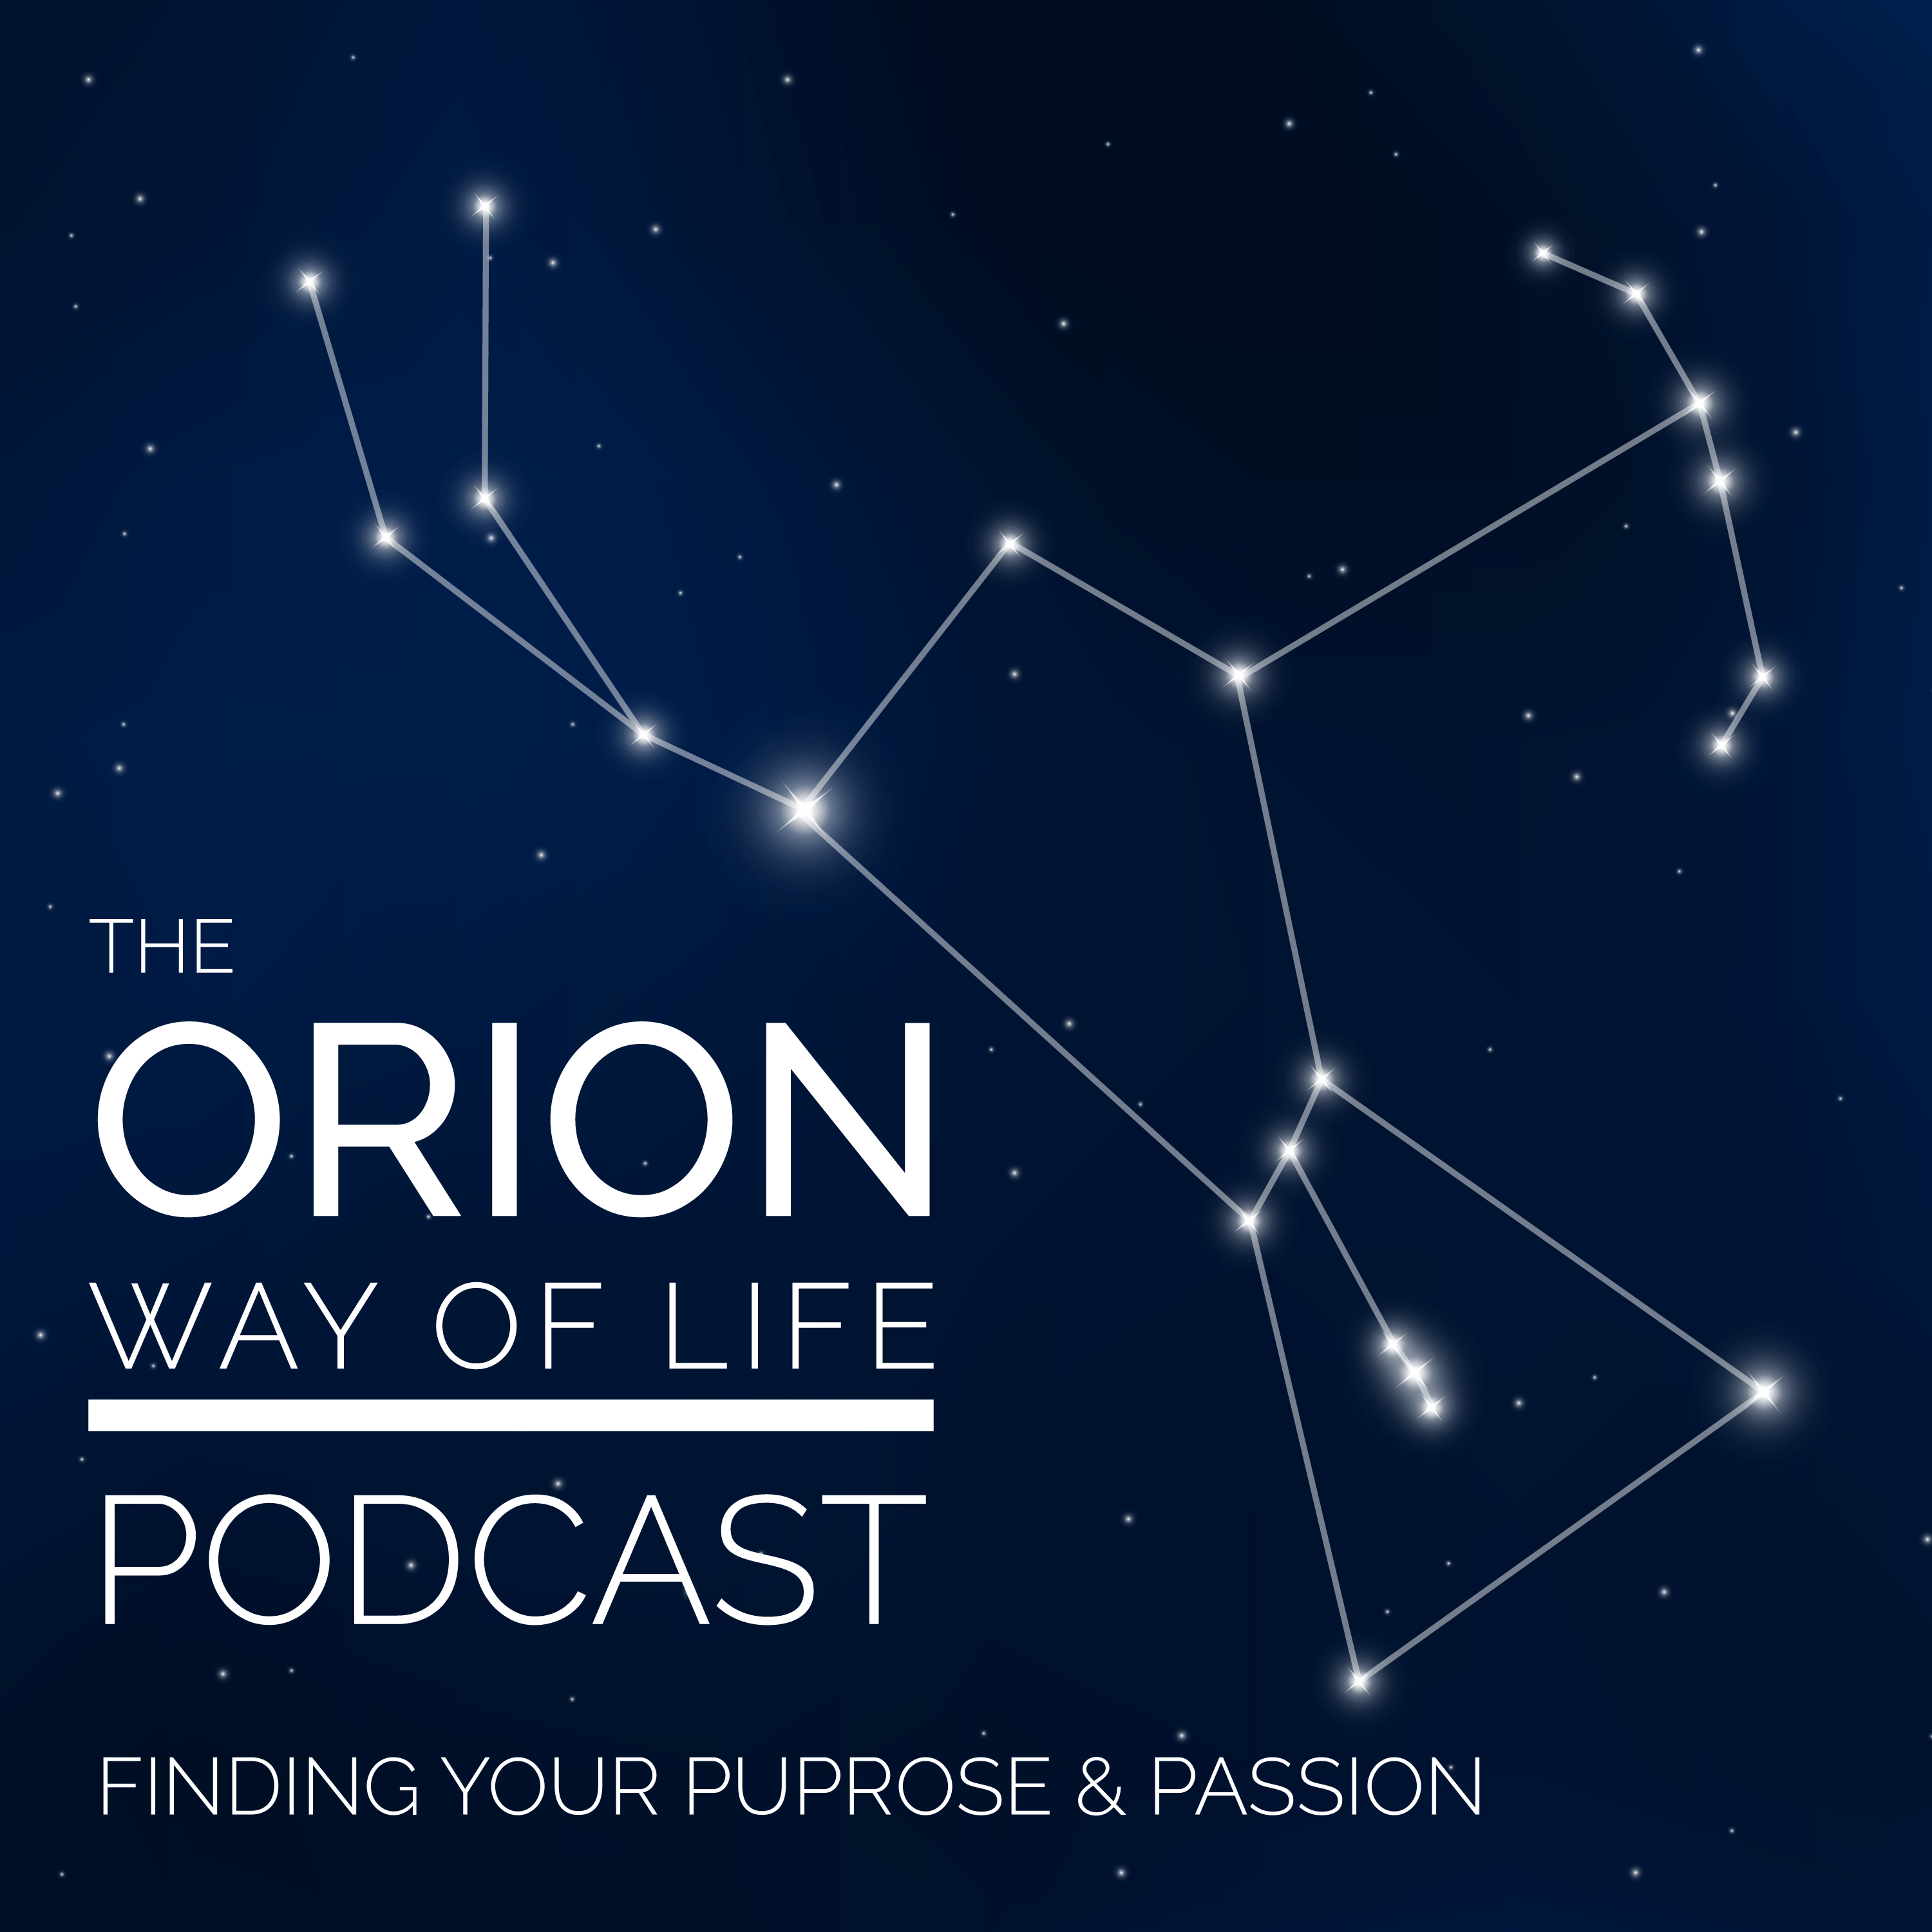 The Orion Way of Life Podcast show art